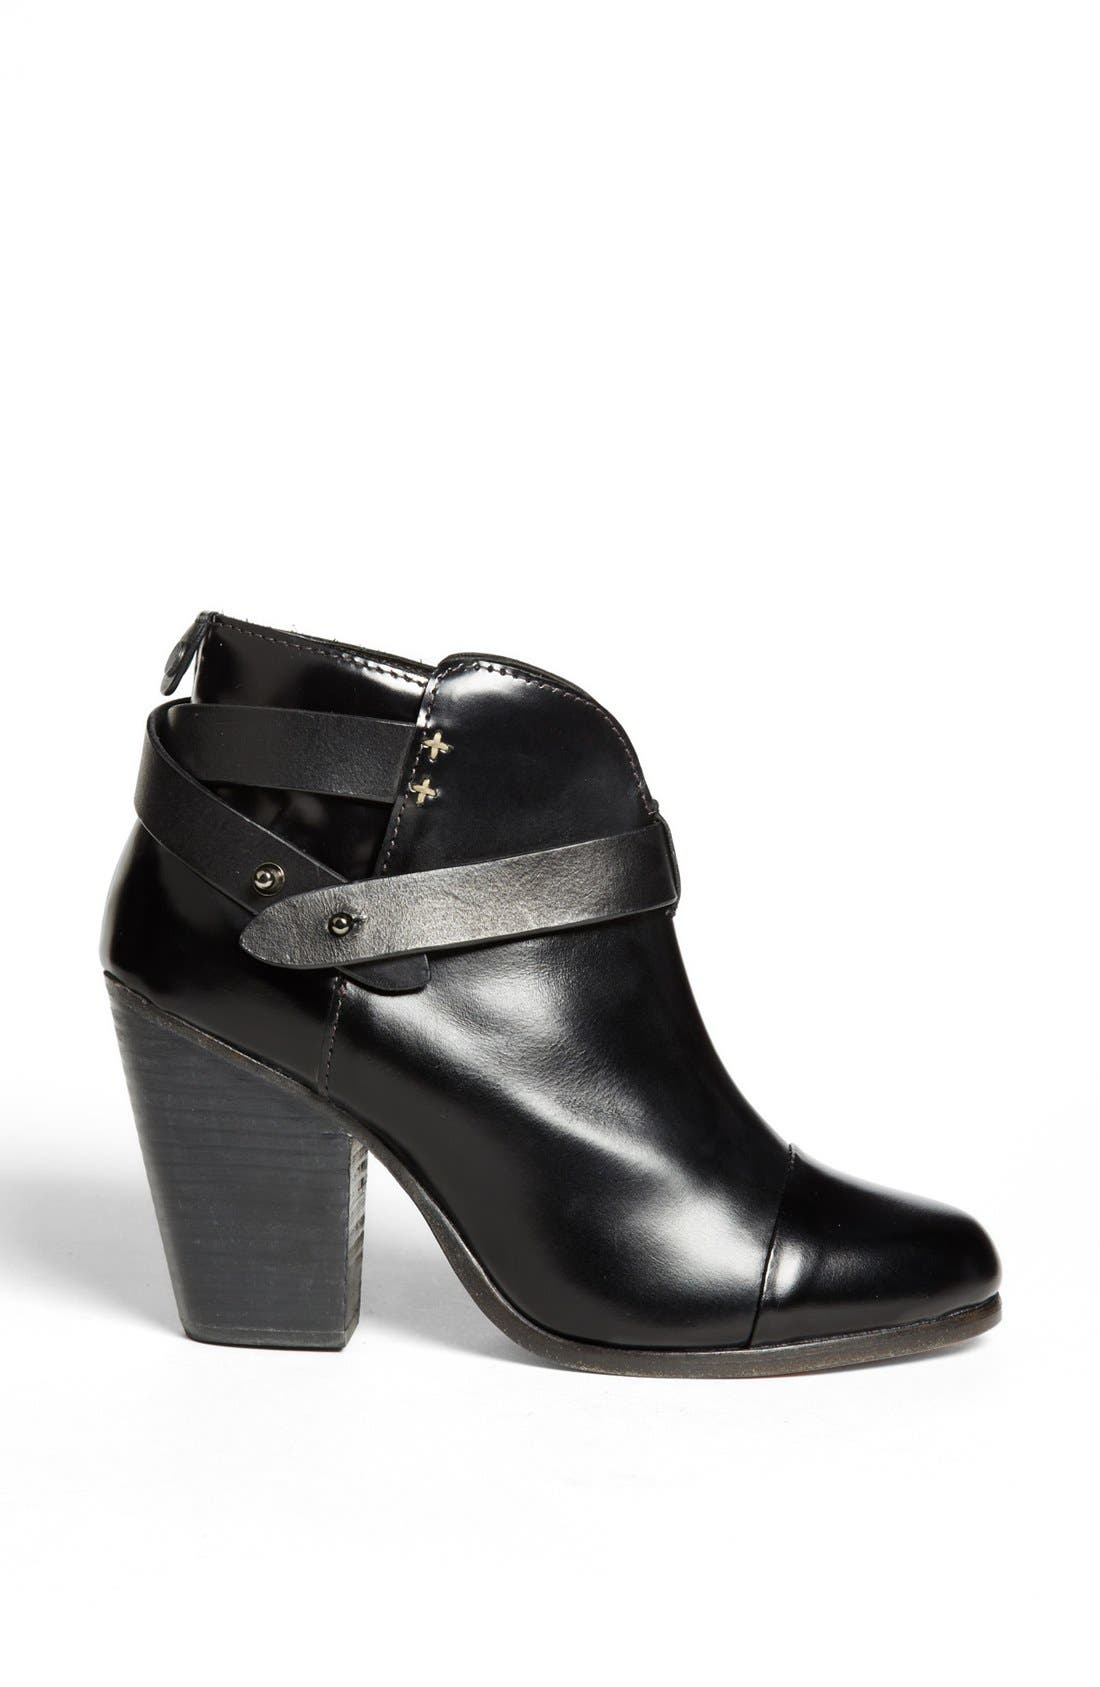 RAG & BONE, 'Harrow' Bootie, Alternate thumbnail 2, color, 001